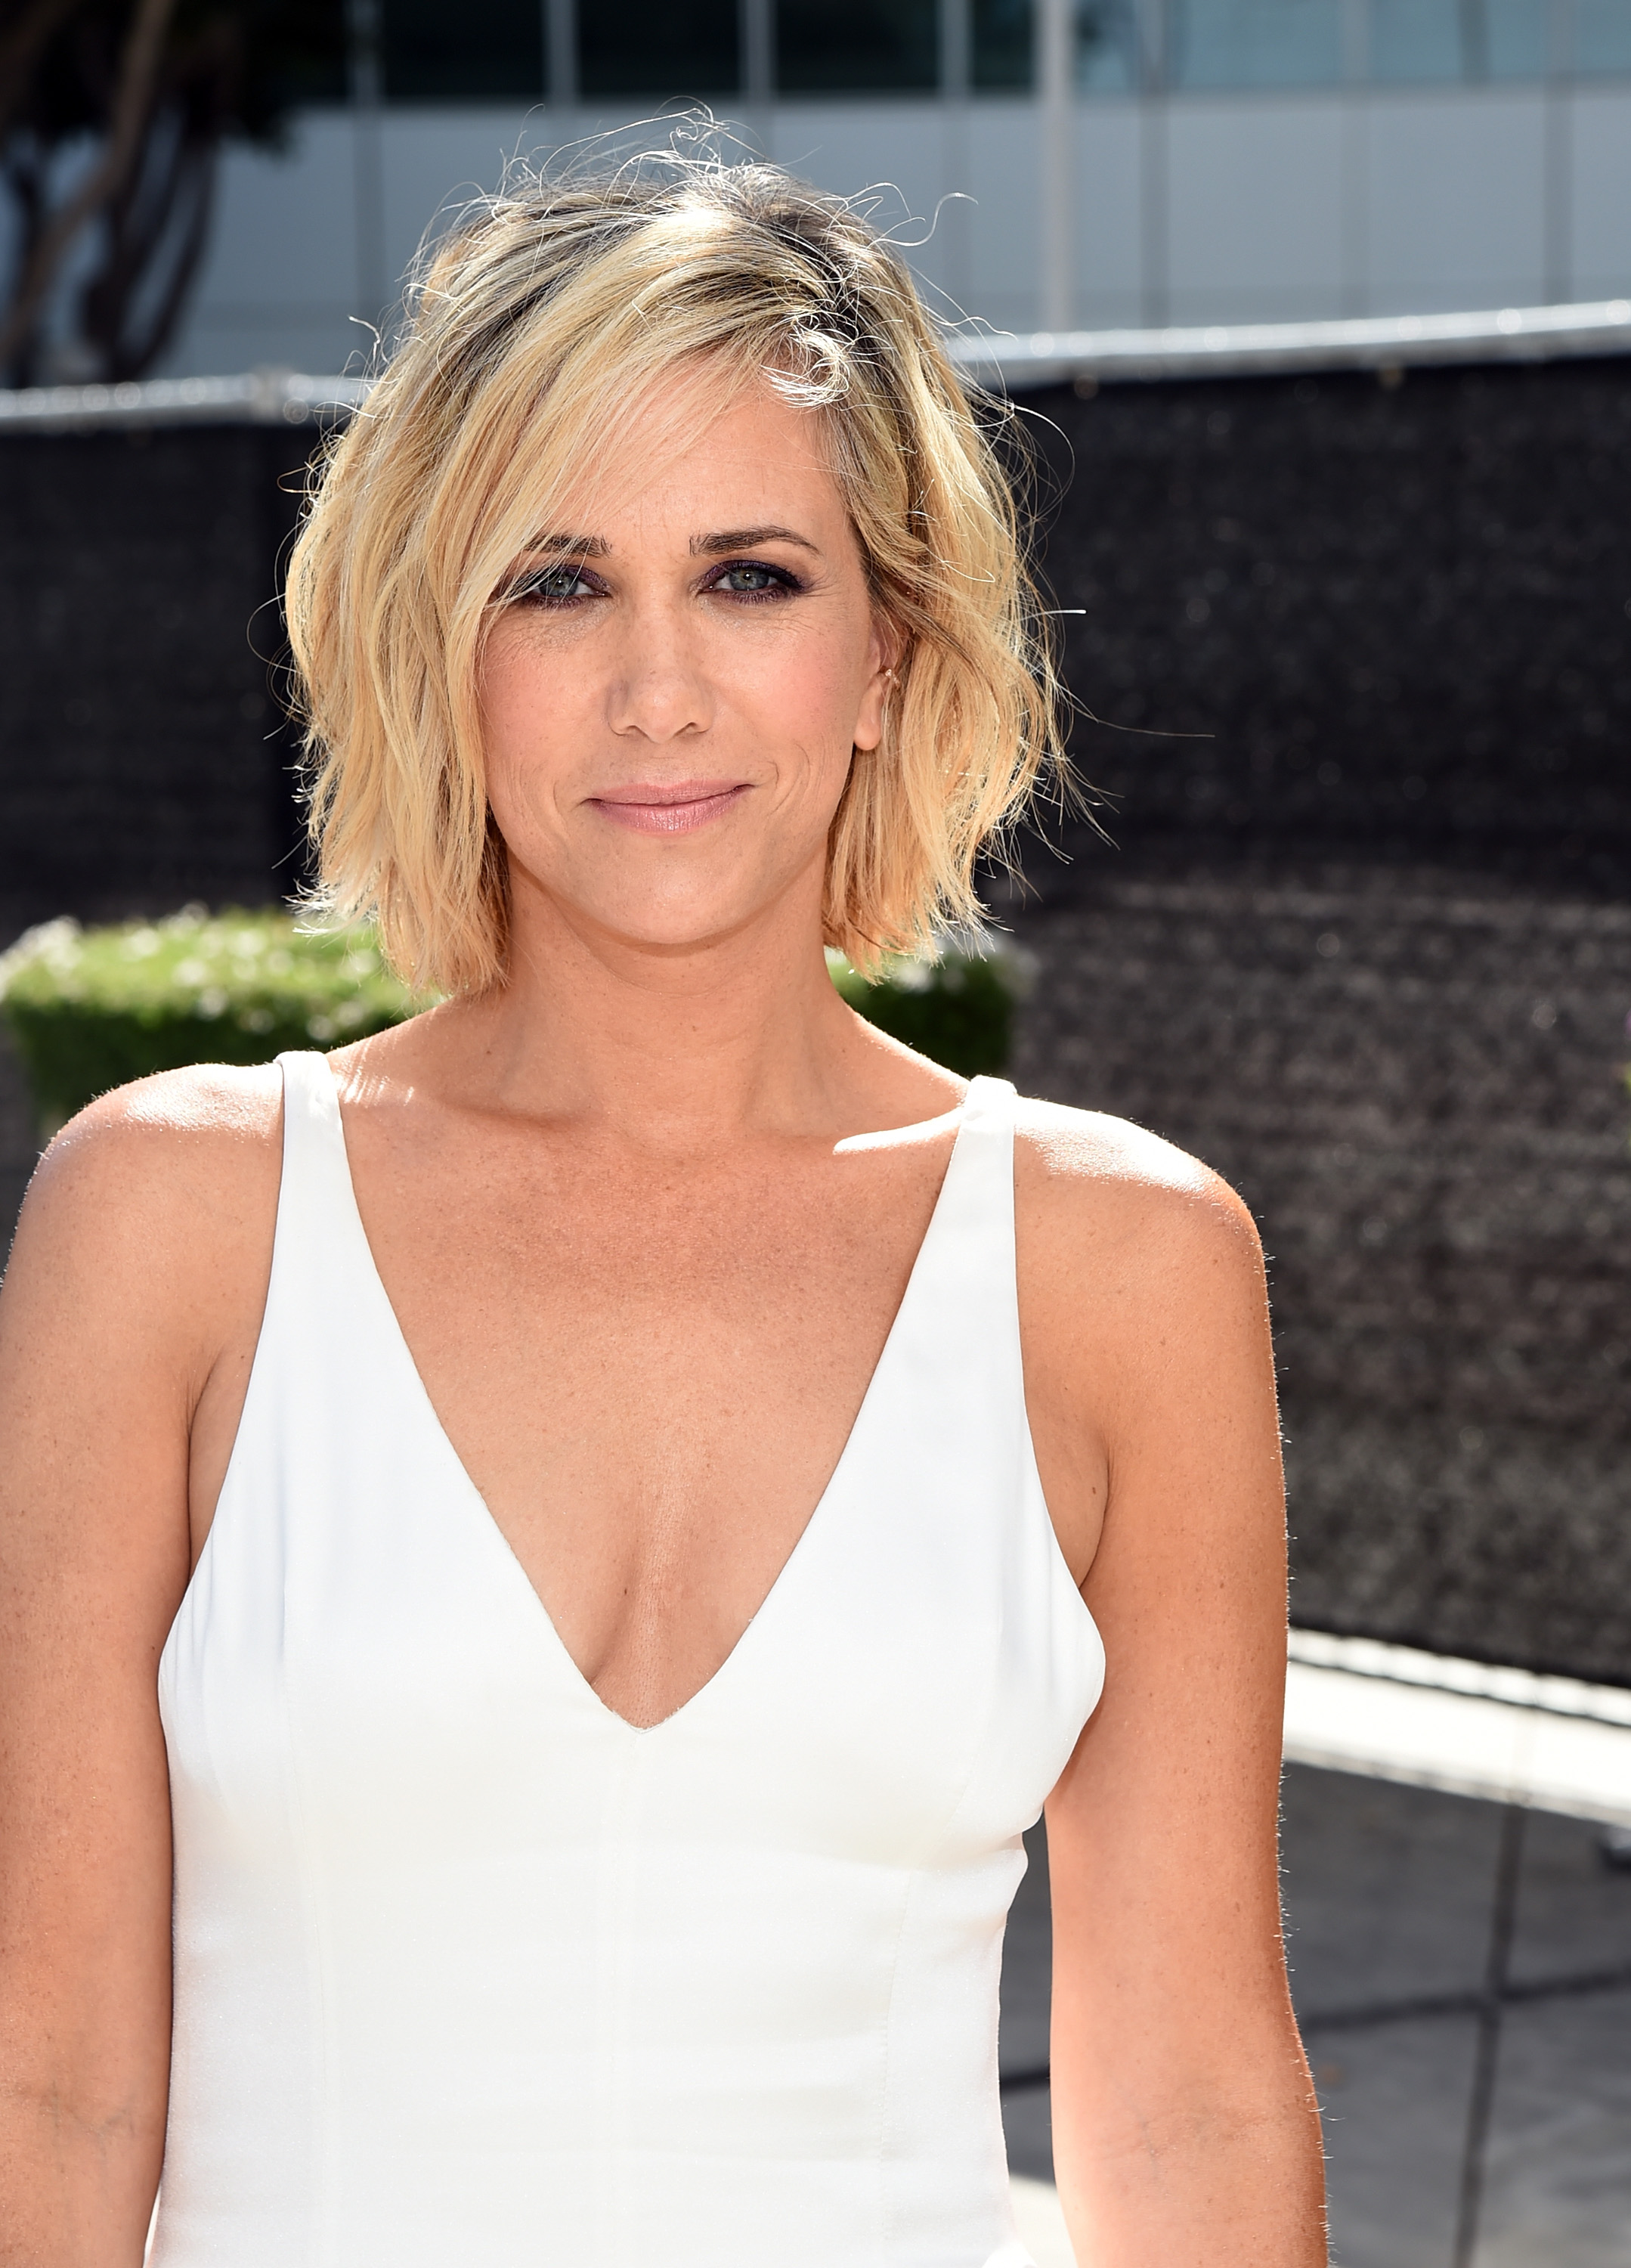 Actress Kristen Wiig, best known for being one of the funniest cast members of 'Saturday Night Live', will portray one of Wonder Woman's greatest enemies. (Getty Images)